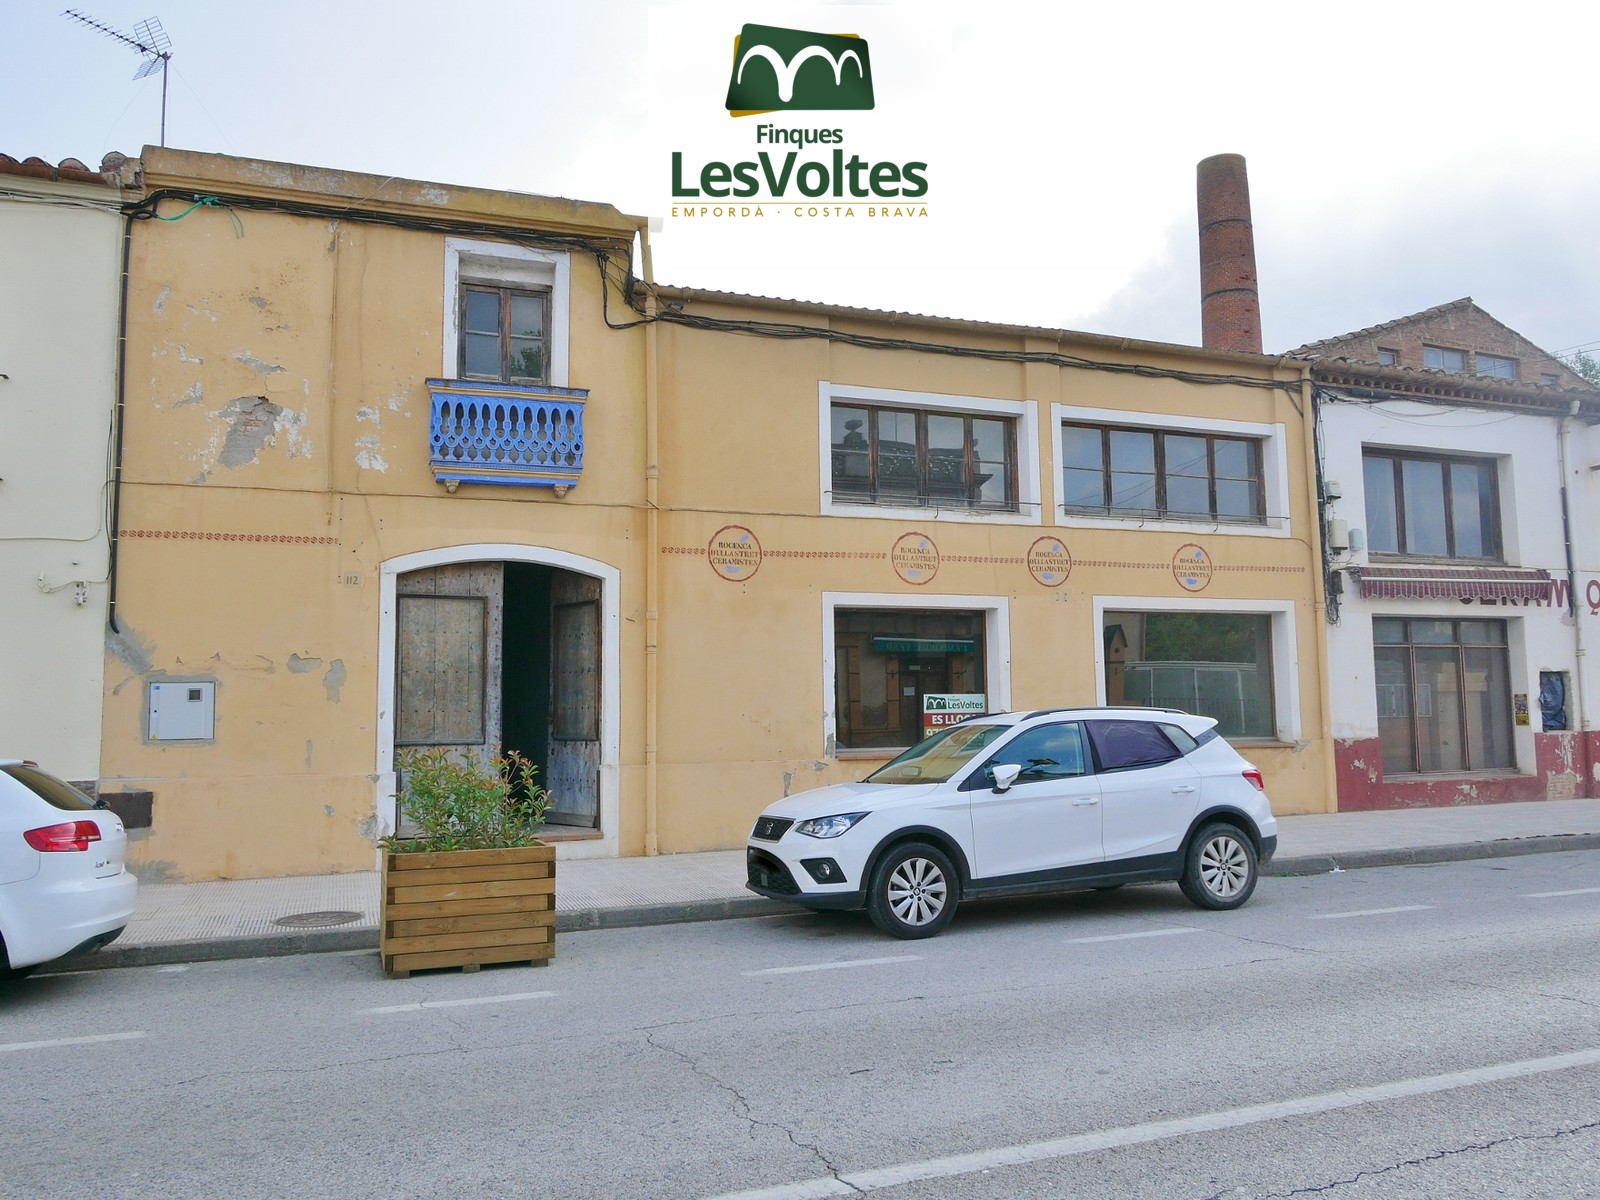 COMMERCIAL PREMISES OF 300 M2 ON THE GROUND FLOOR WITH FIRST FLOOR FOR RENT IN LA BISBAL D'EMPORDÀ.